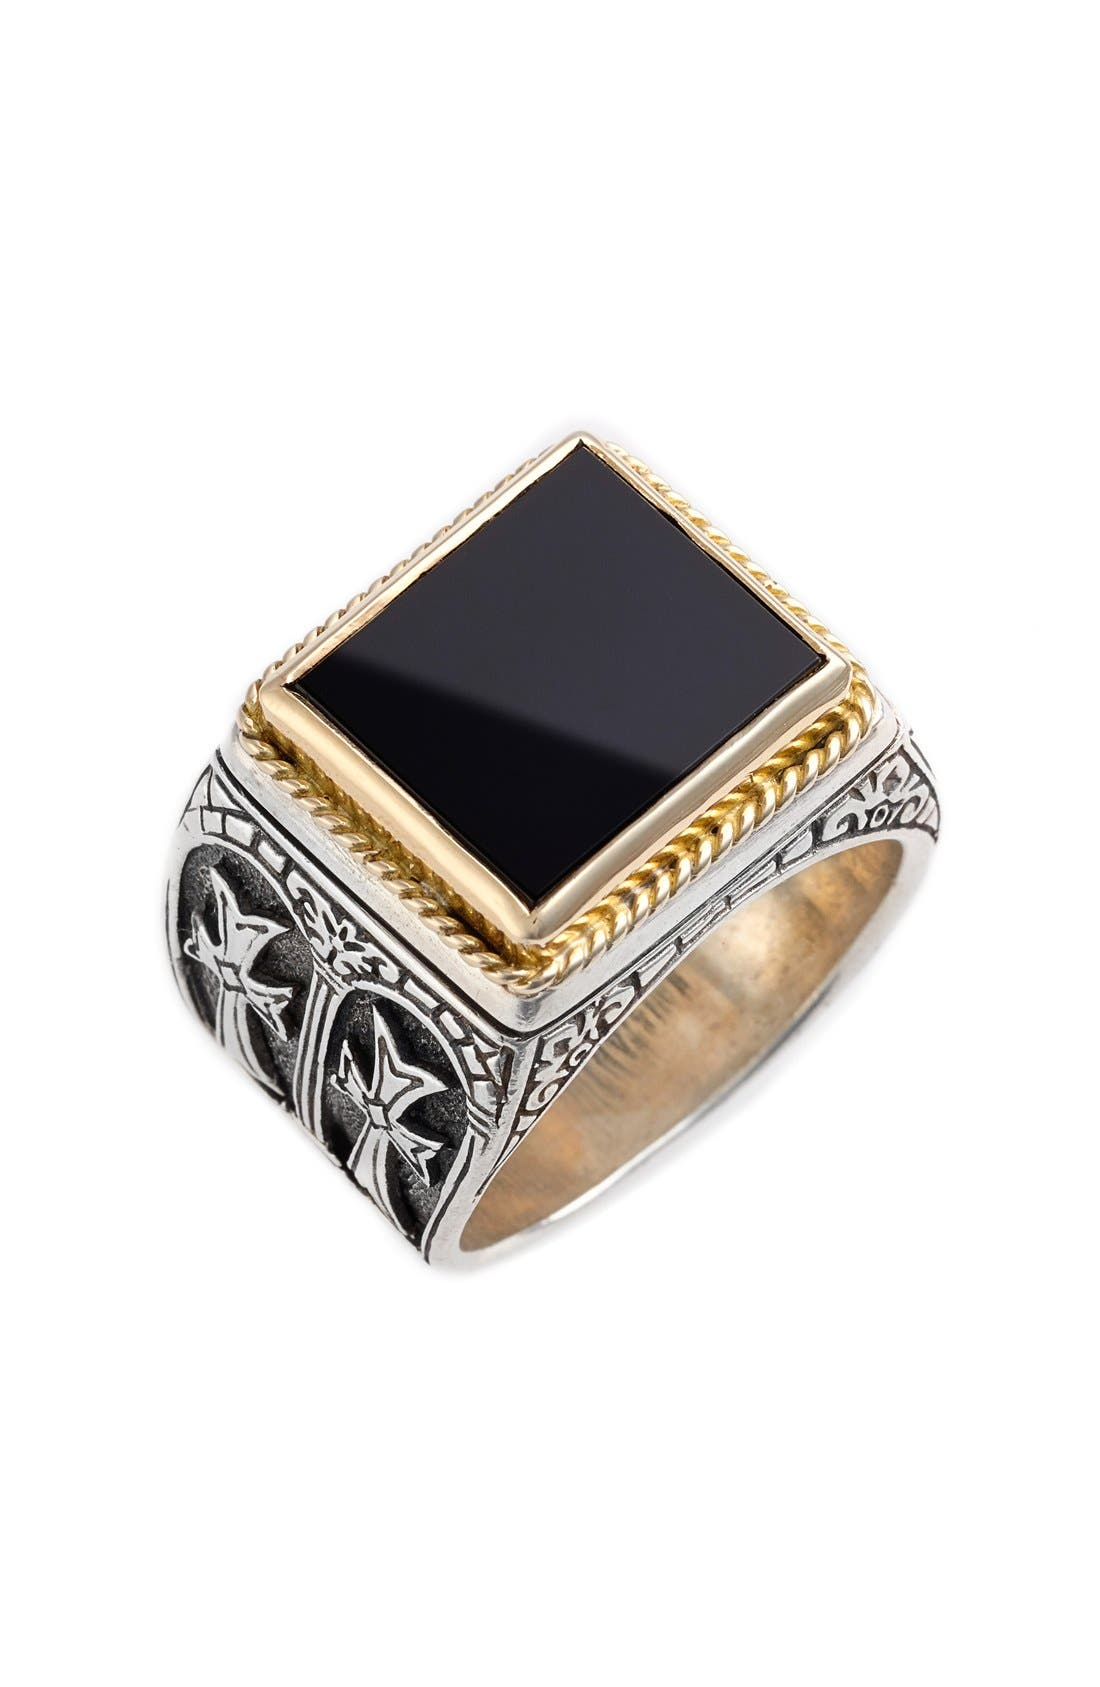 'Minos' Side Cross Ring,                         Main,                         color, SILVER/ GOLD/ BLACK ONYX